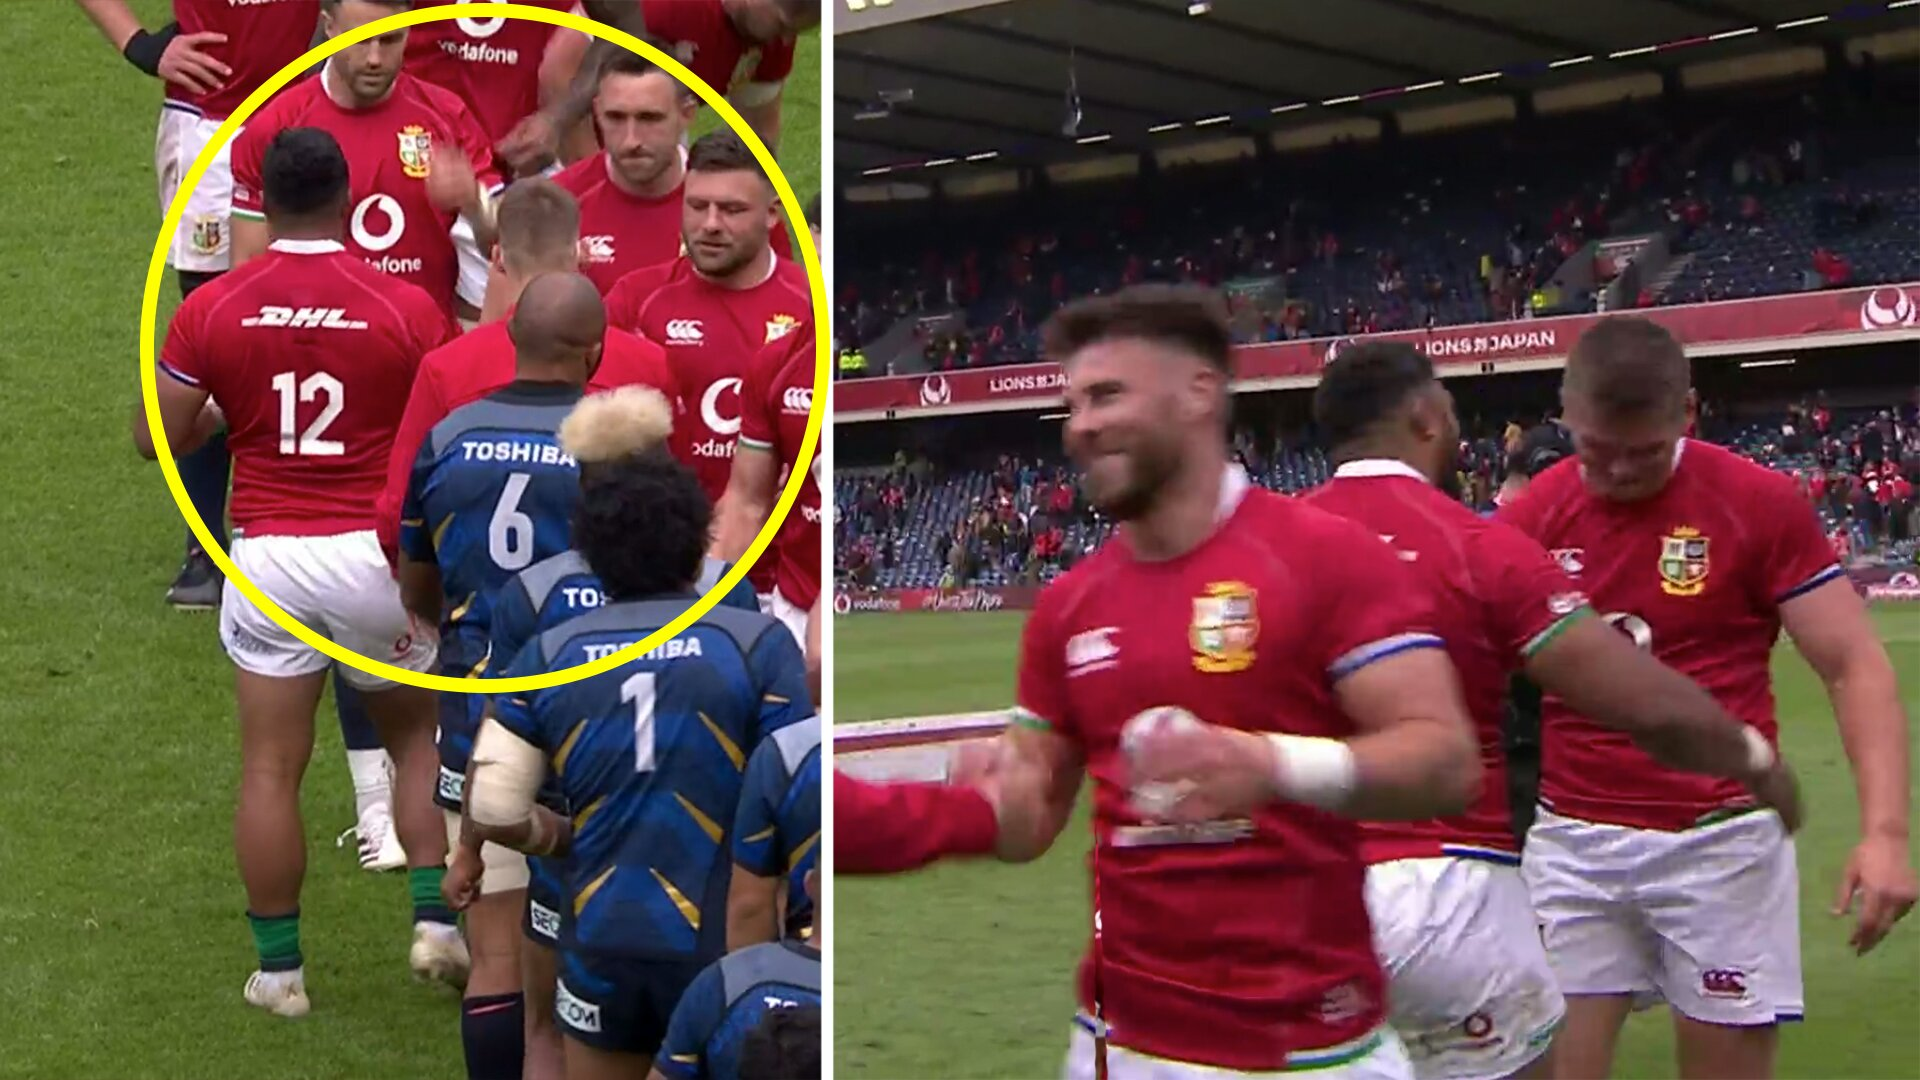 Rumours of tension in Lions camp after bizarre post game incident